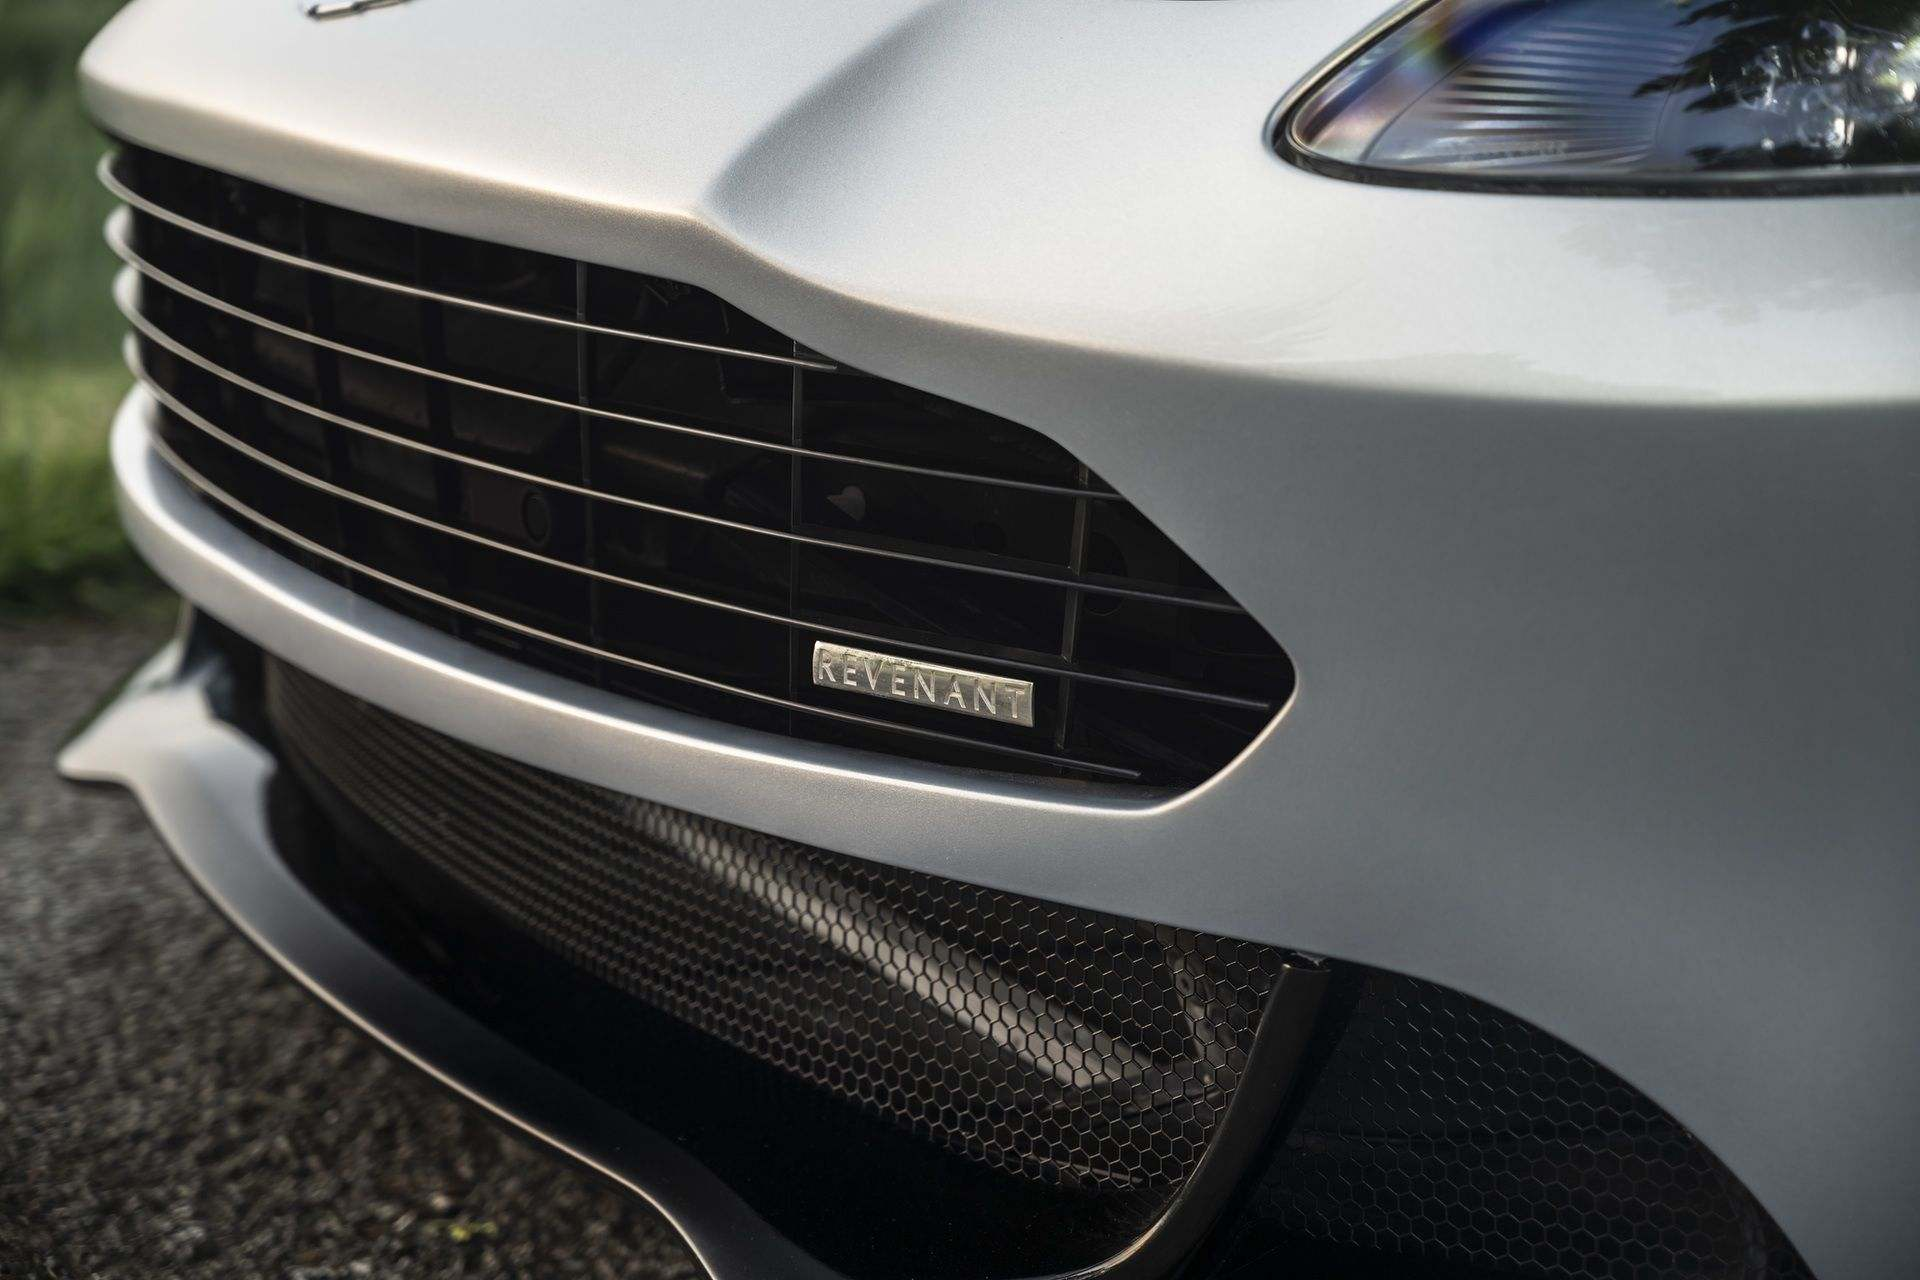 2.-Revenant-Automotive-Aston-Martin-Vantage-bumper-badge-with-grille-types